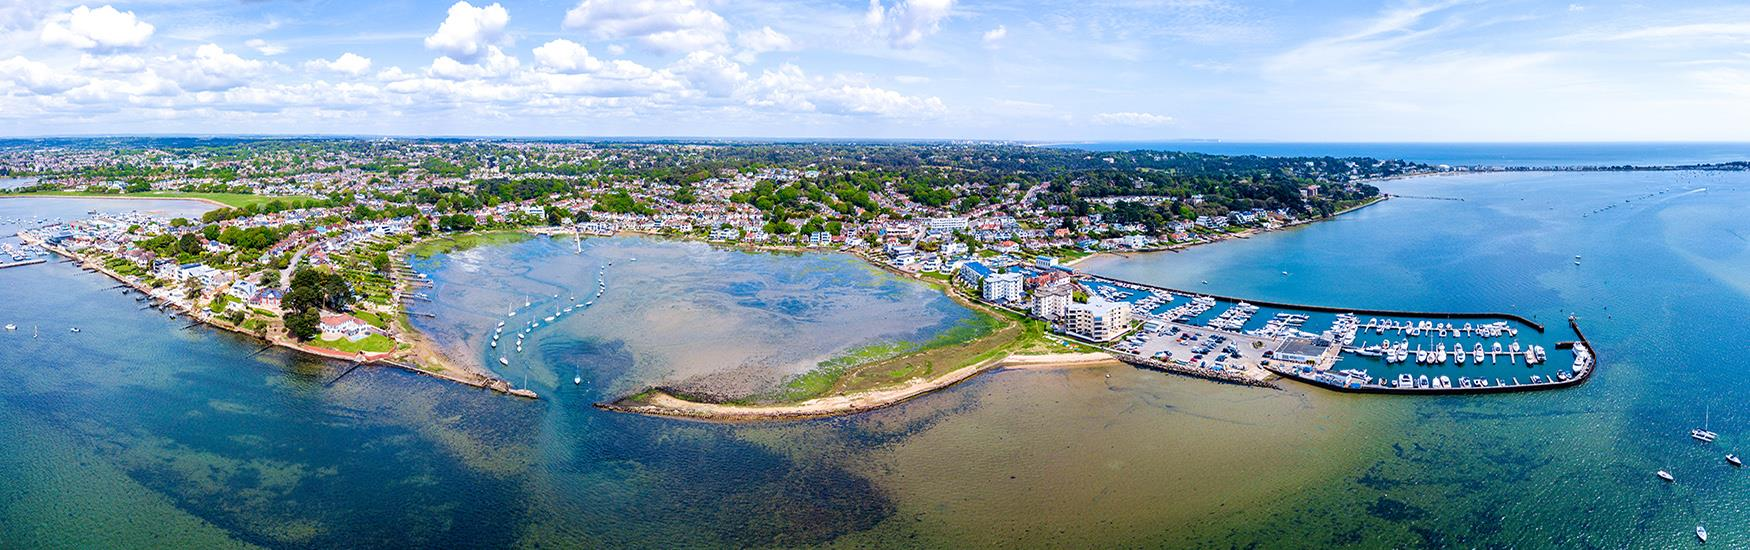 Aerial view of Poole harbour and marina with the blue hue of the sea enhancing the image